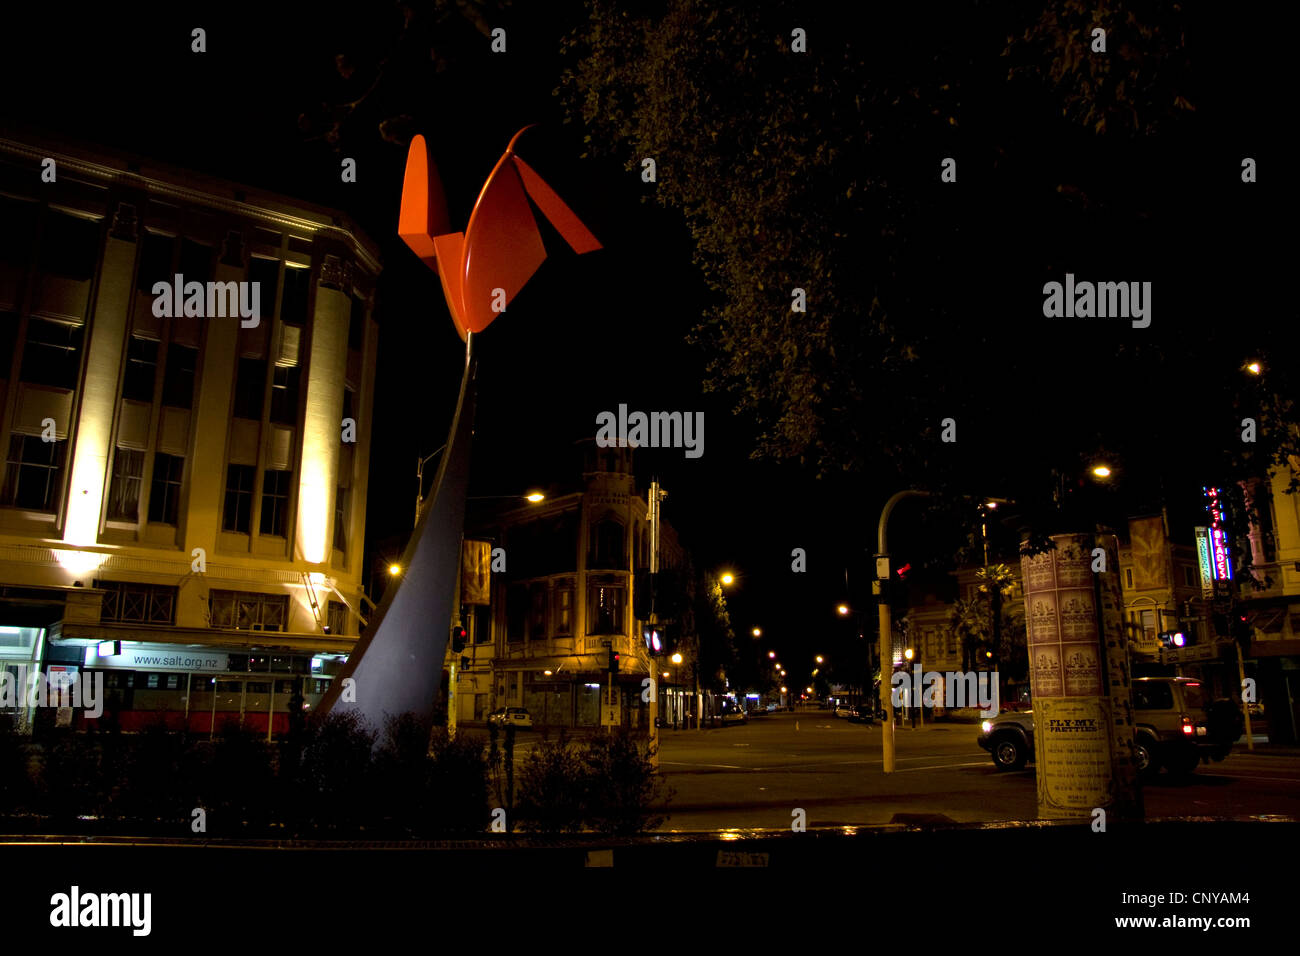 Night view of Phil Price's Nucleus sculpture, Christchurch. - Stock Image